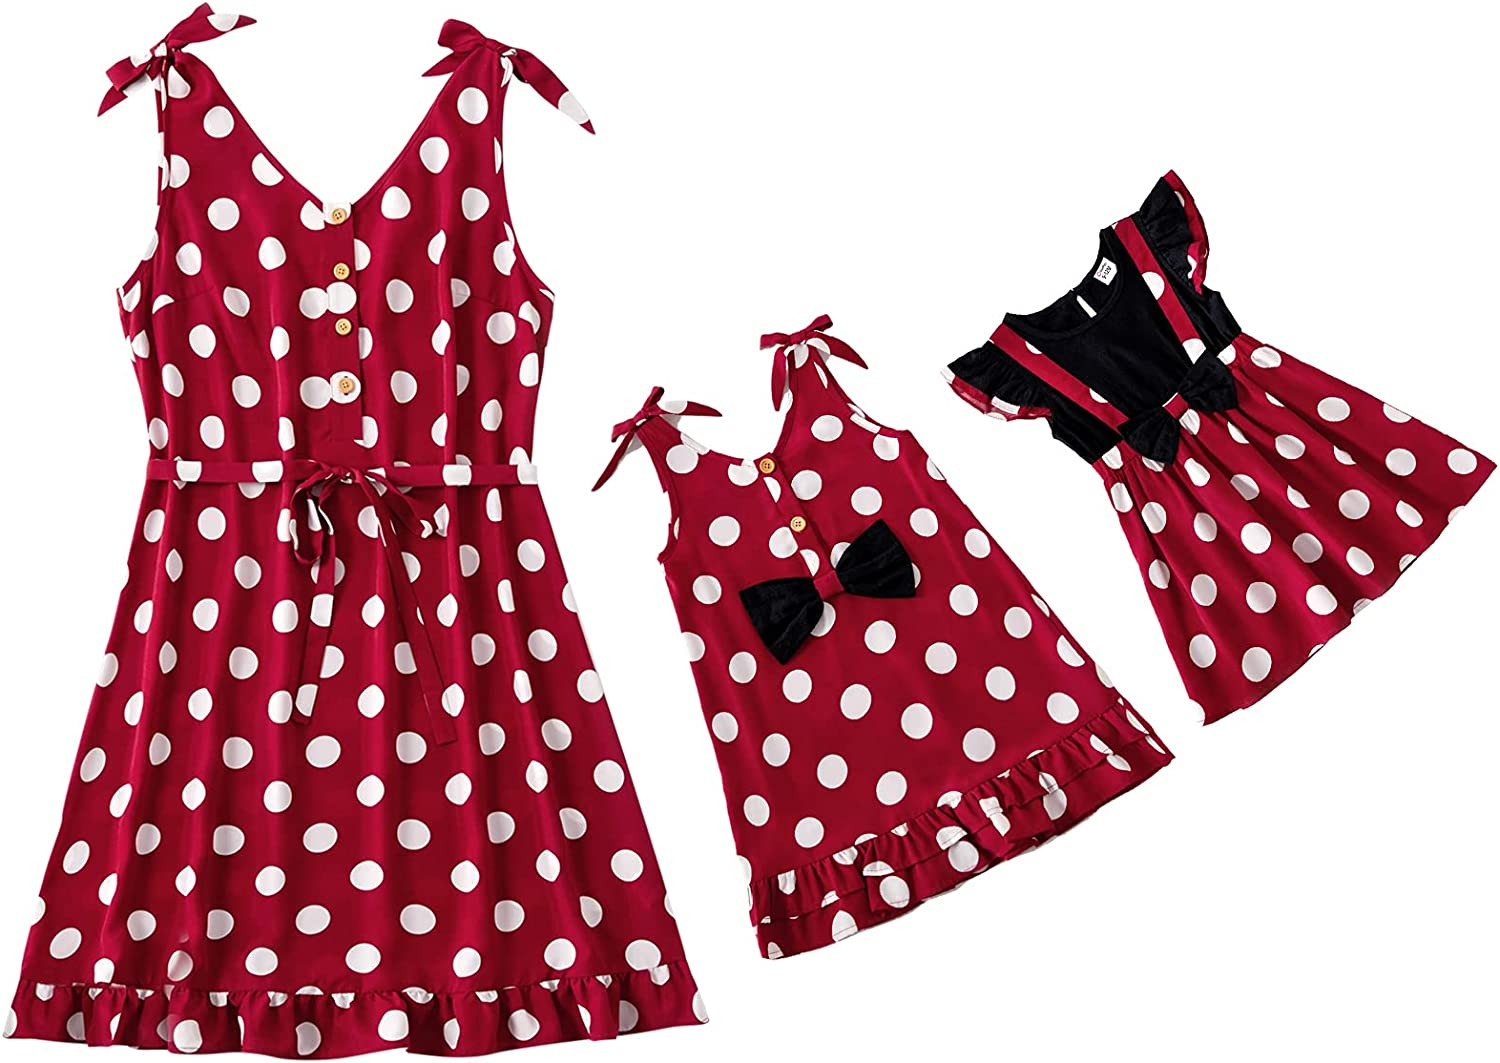 PatPat Plus Size Mommy and Me Polka Dots Dresses Matching Set Sleeveless Flounce Color Block Family Matching Dresses